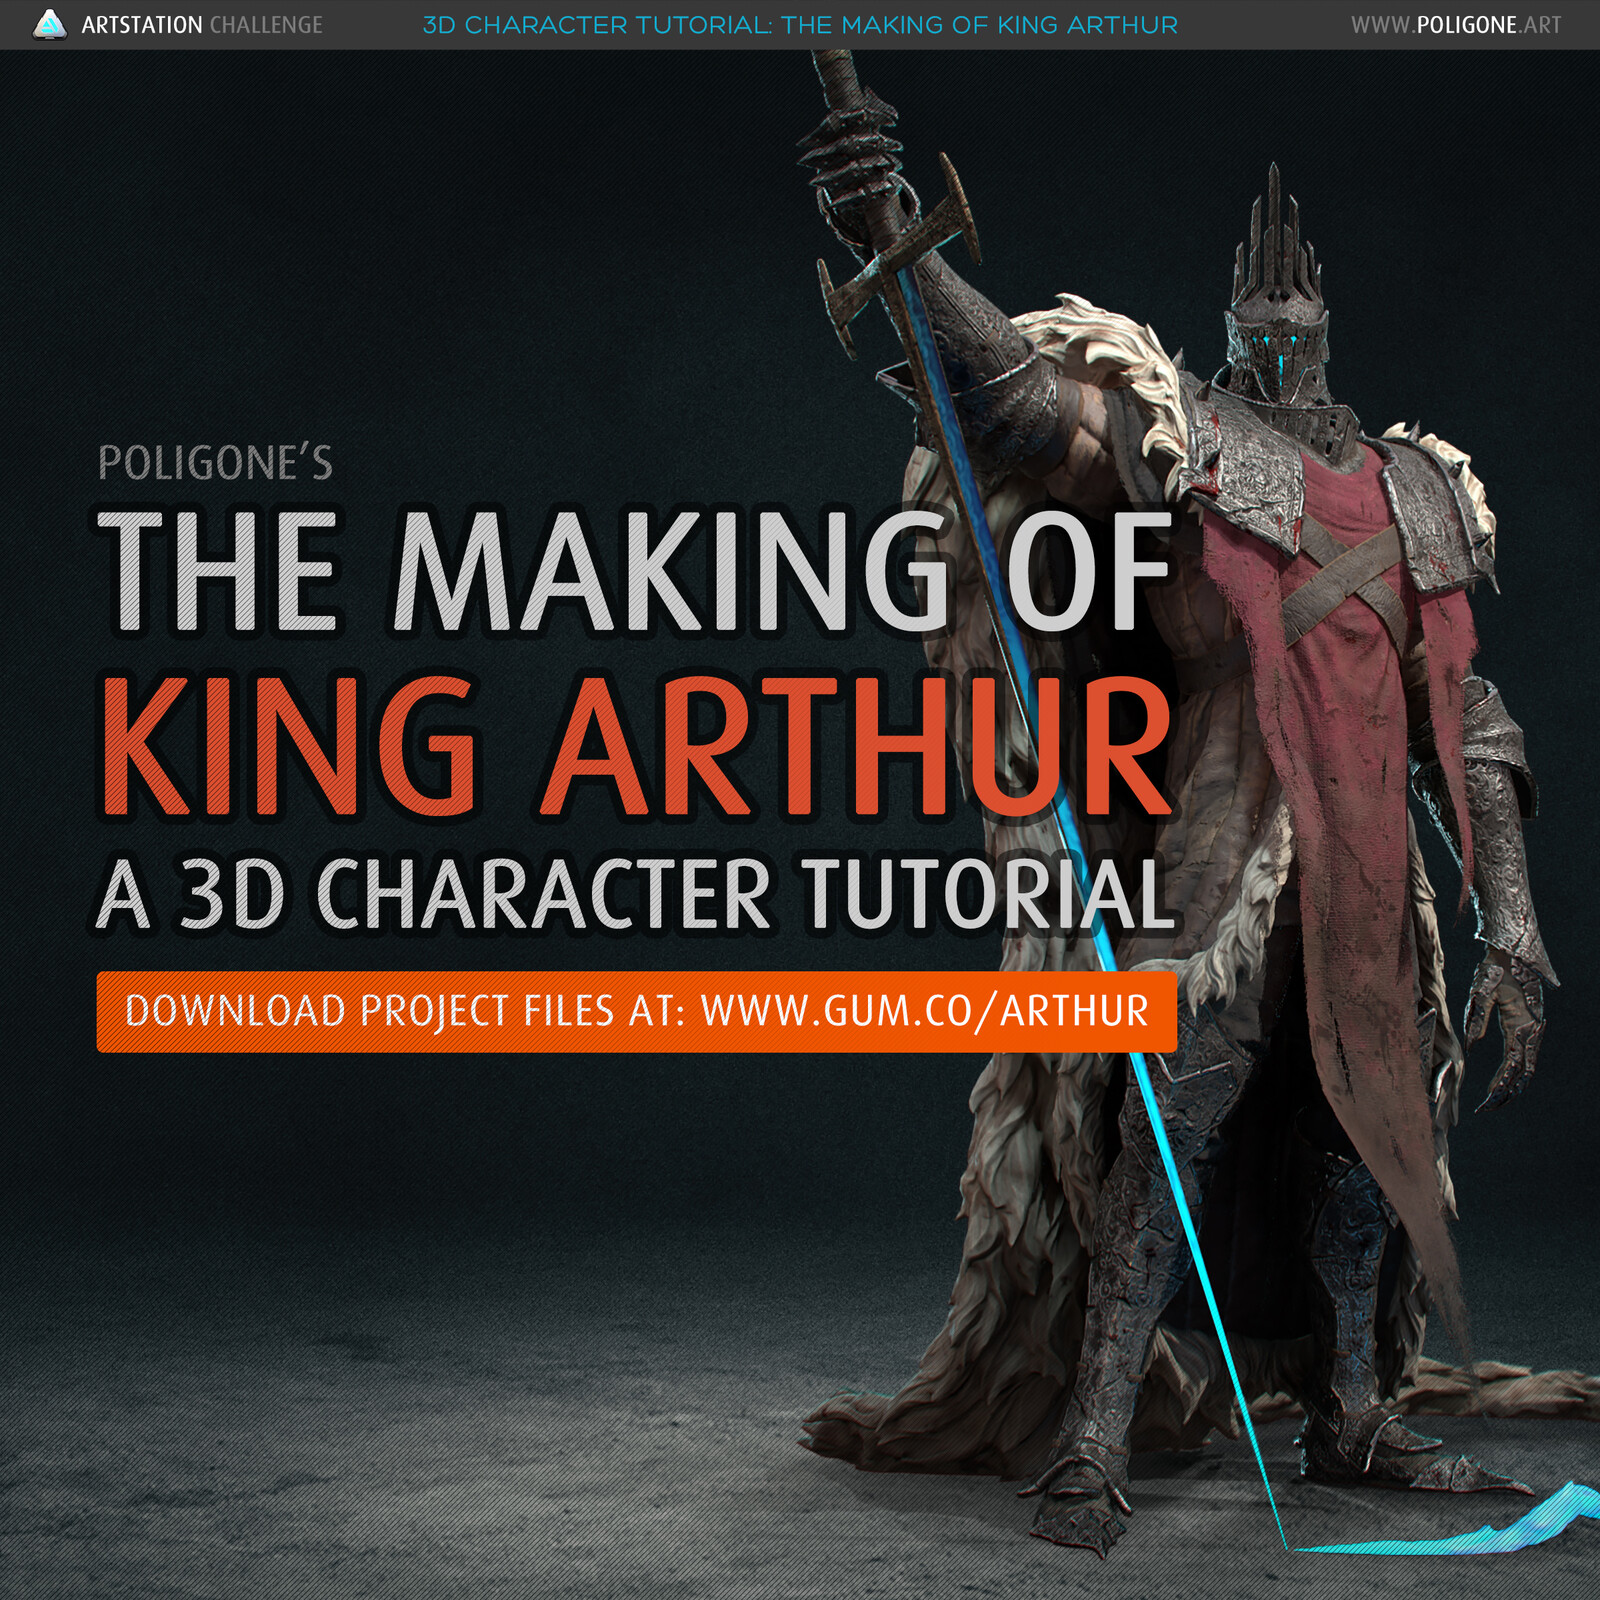 The Making of King Arthur - A 3D Character Tutorial